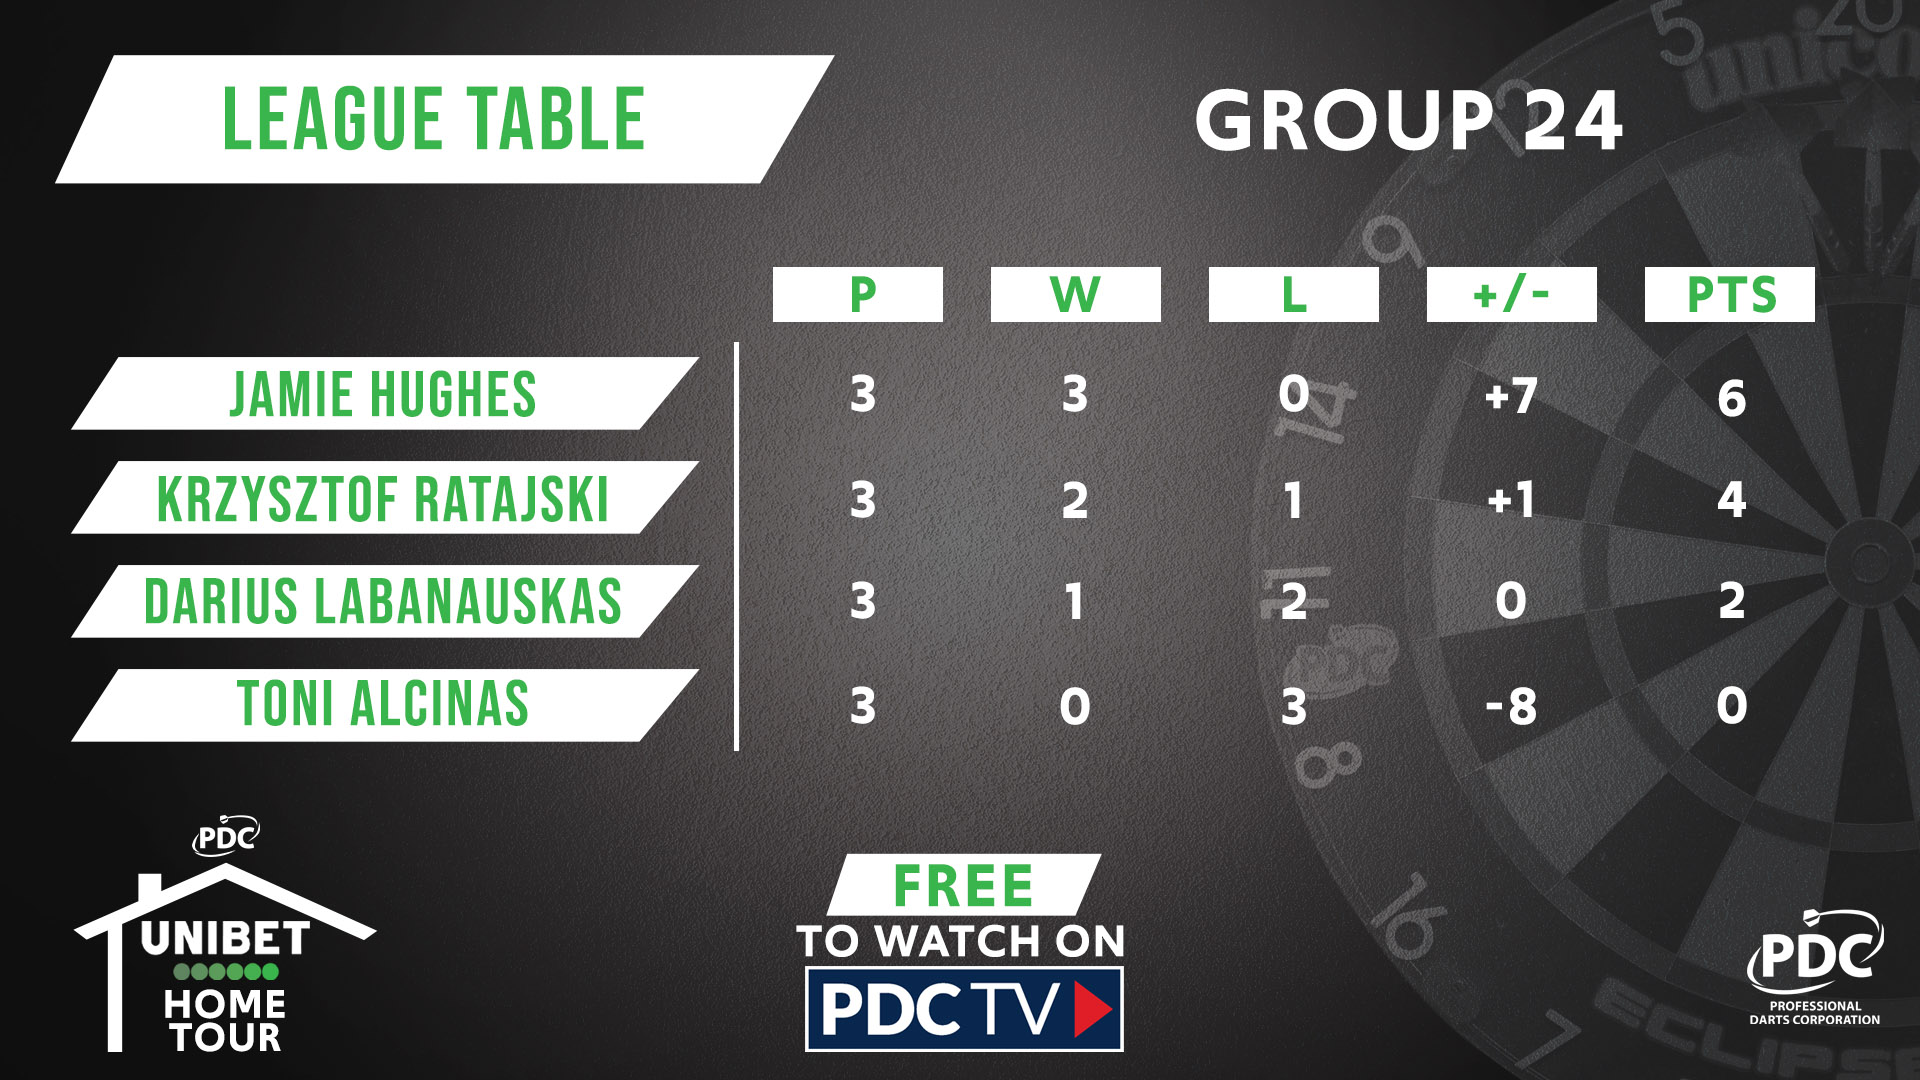 Group 24 table